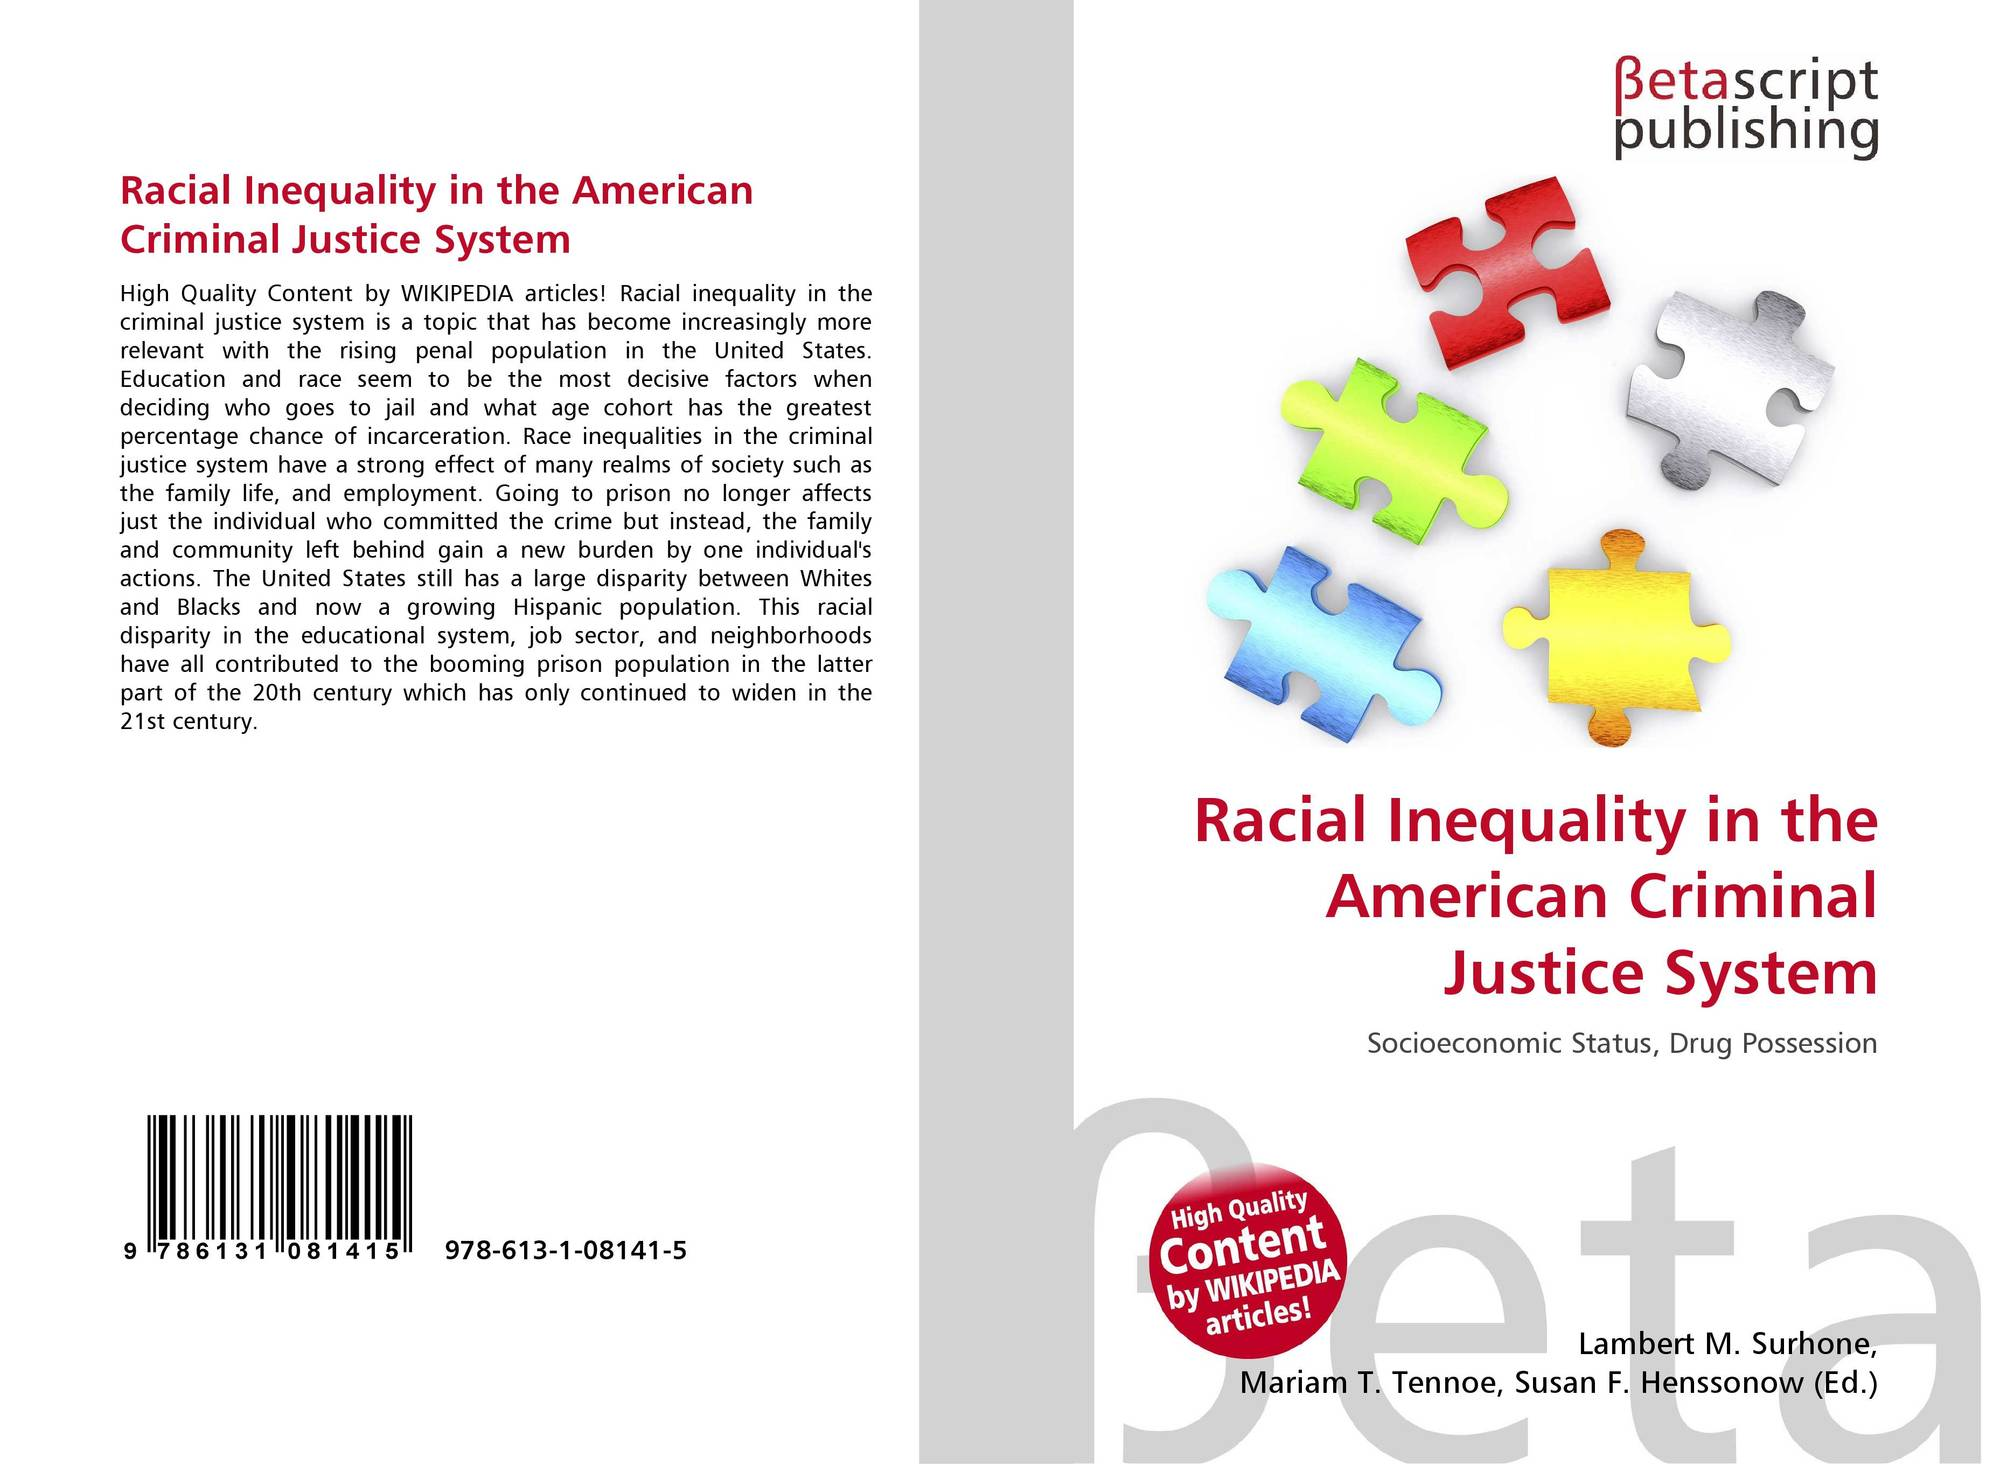 inequalities in the american justice system should be eliminated Racial inequality in the criminal justice system gets ignored because it doesn't hispanics are 16 percent of america but 24 percent of the american prison.